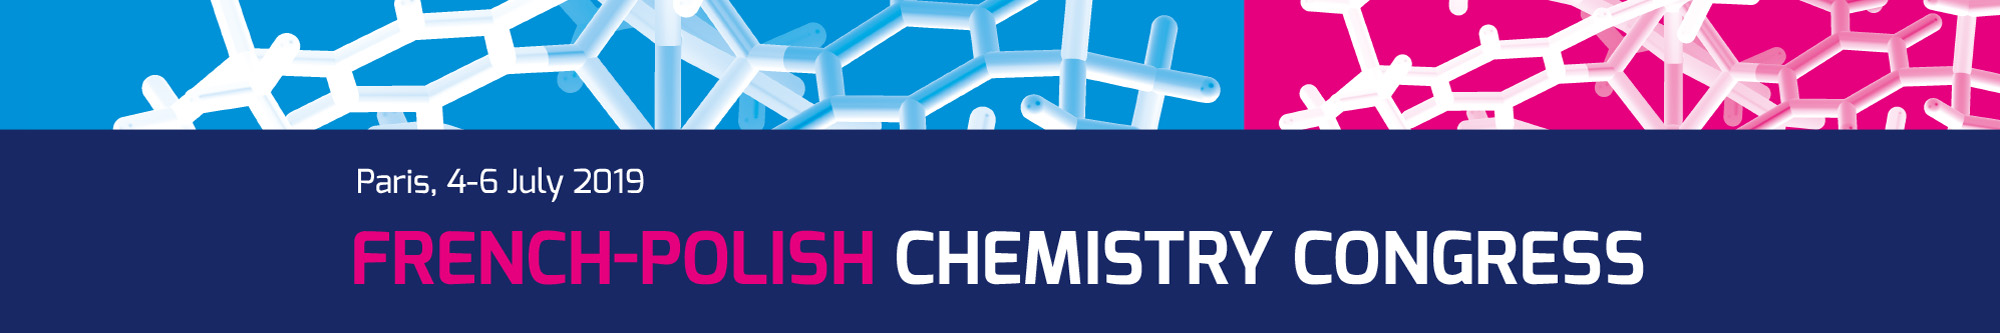 French-Polish Chemistry Congress 2019